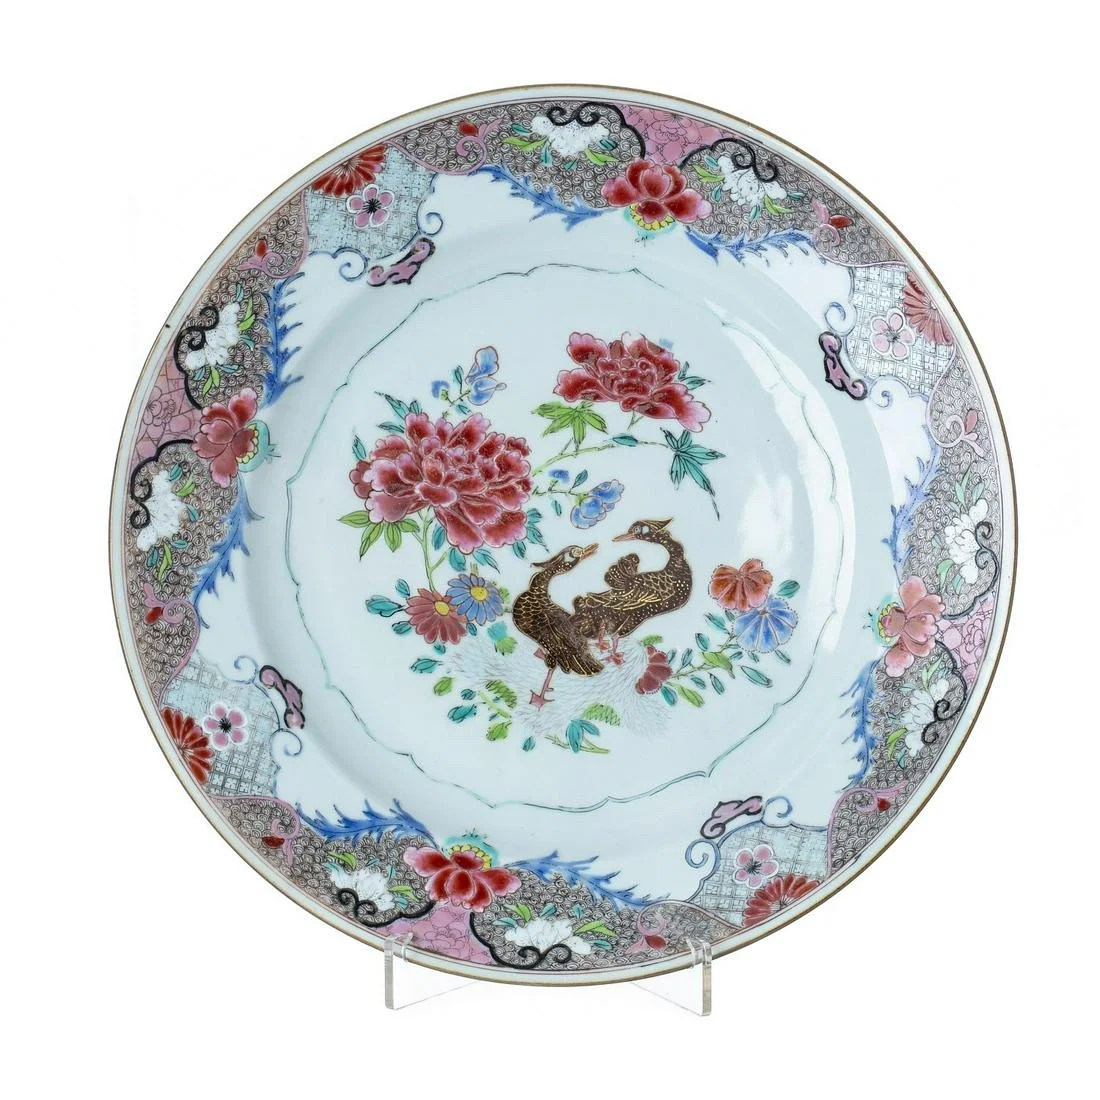 Large plate 'ducks' in Chinese porcelain, Yongzheng